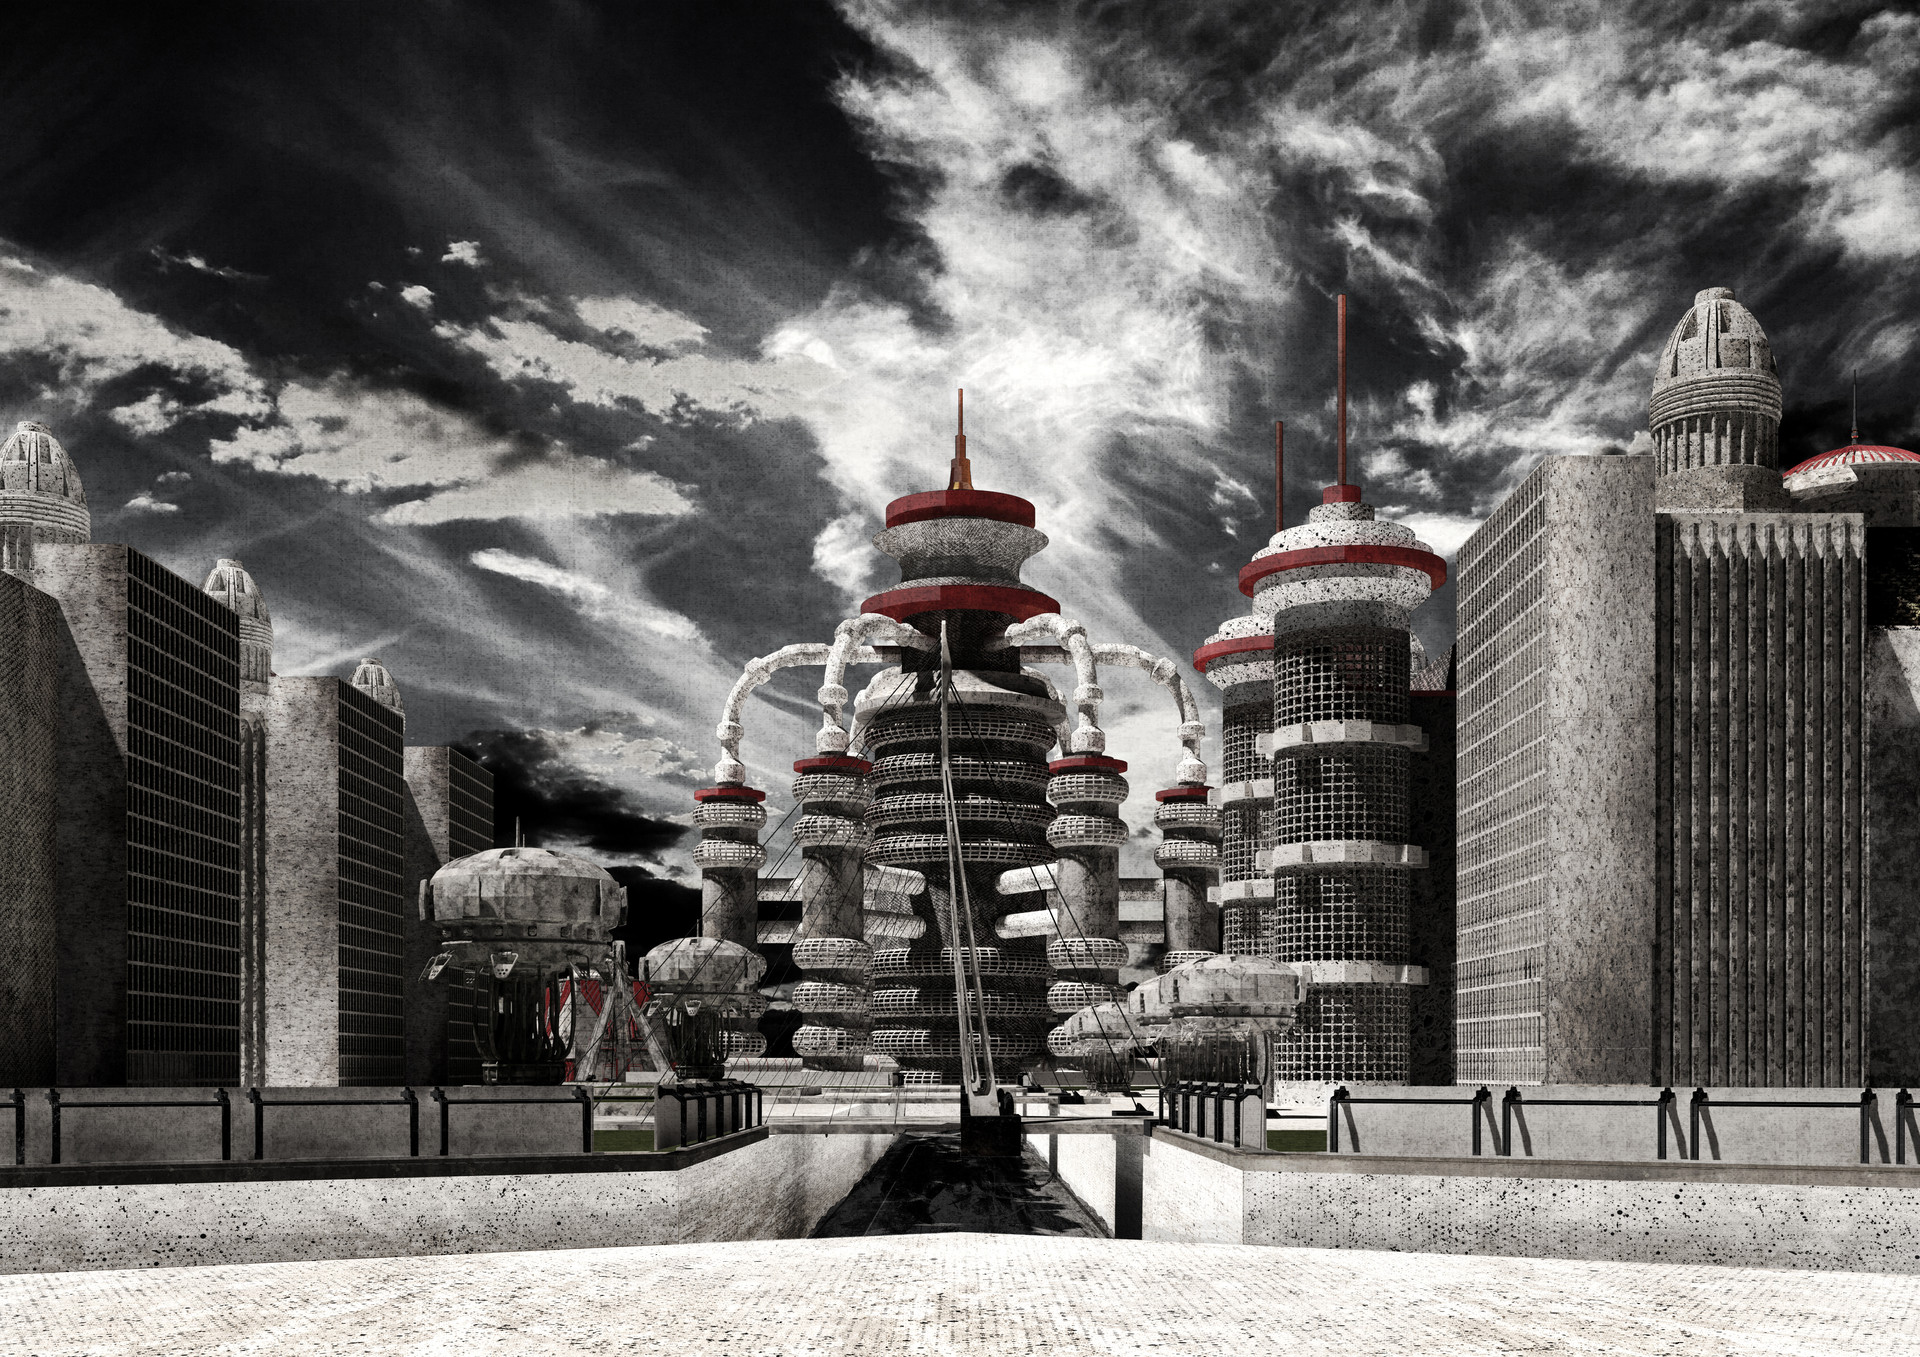 An Authoritarian Architecture